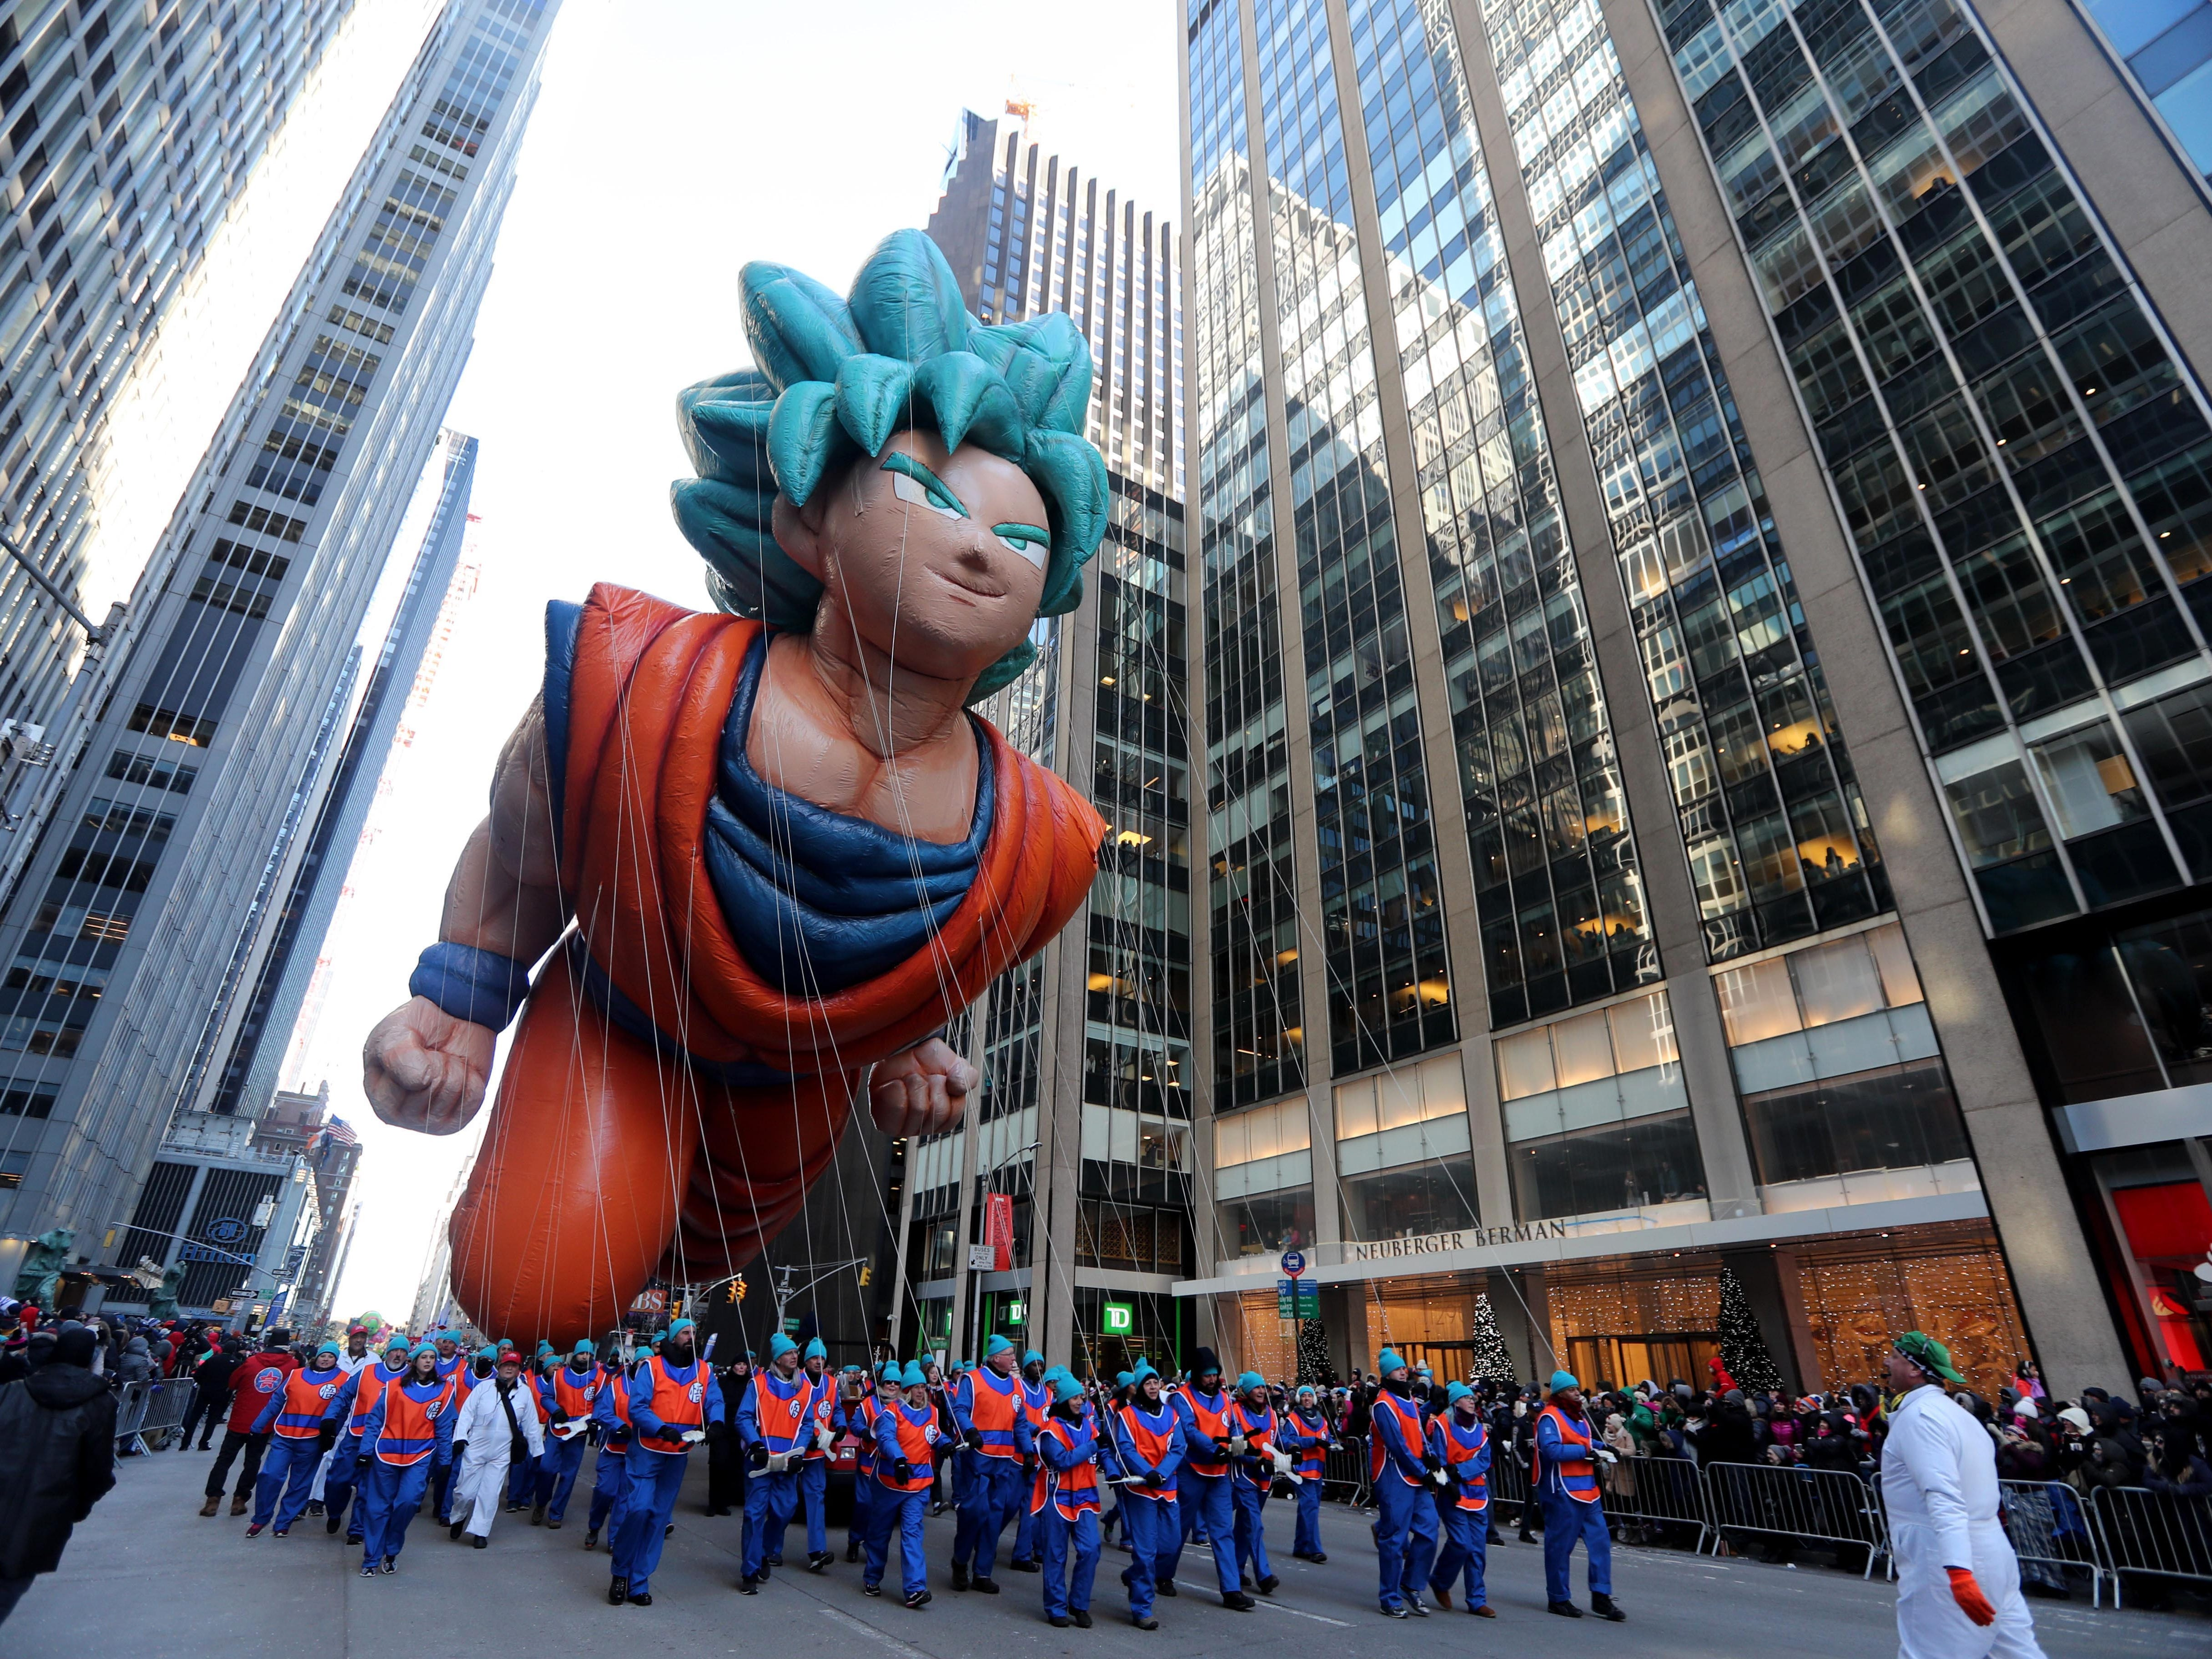 The Goku balloon makes its way down 6th Ave. in New York during the annual Macy's Thanksgiving Day Parade, Nov. 22, 2018.